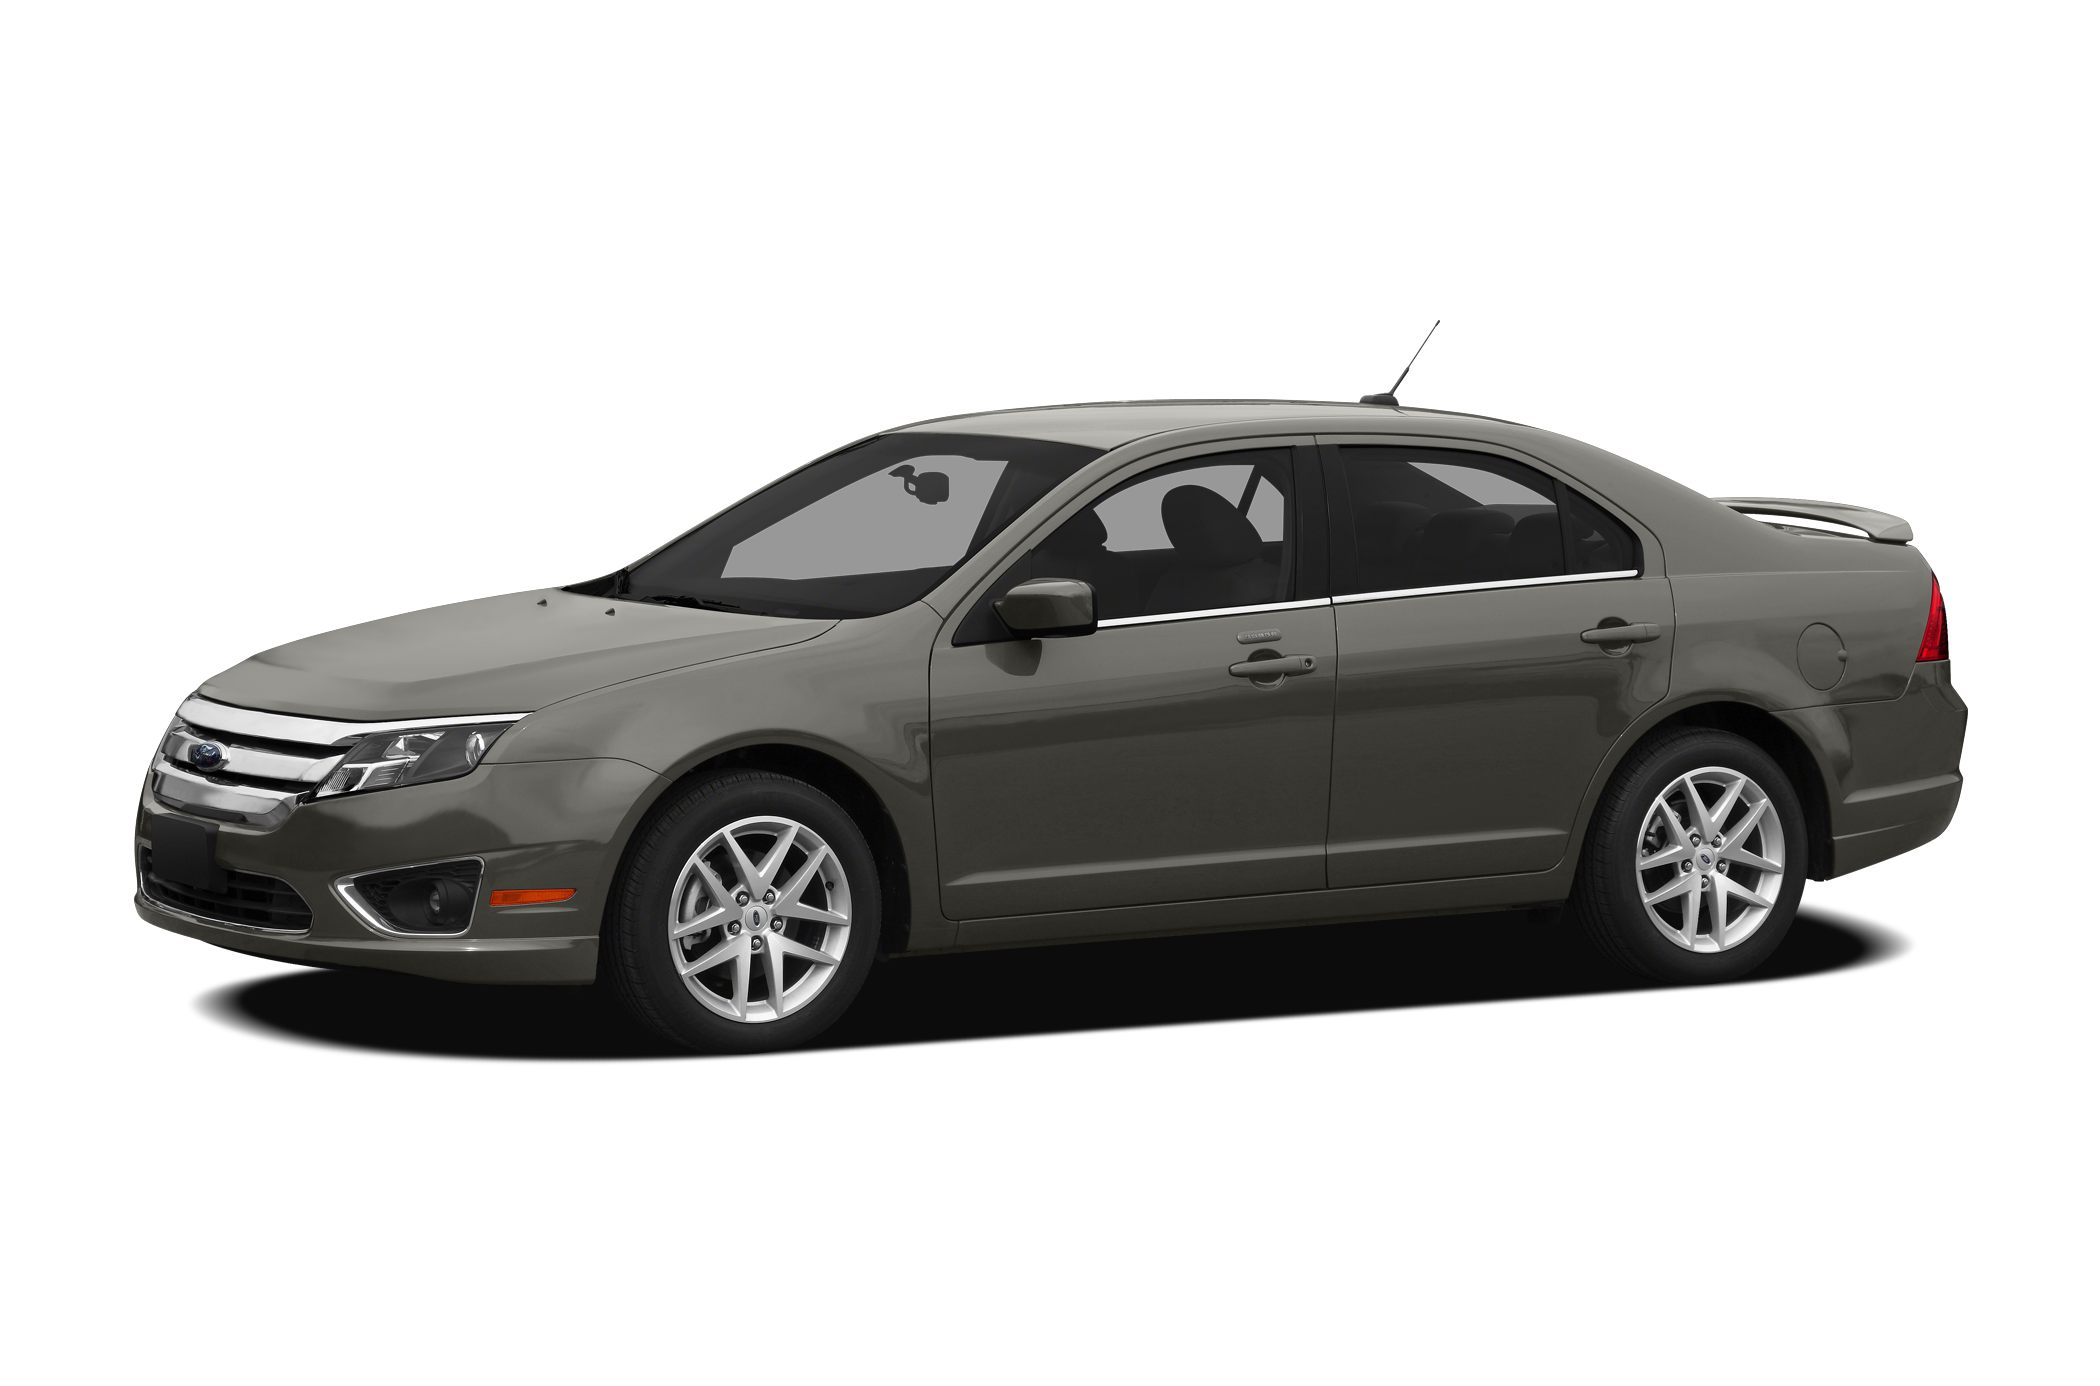 2012 Ford Fusion S Sedan for sale in Malvern for $0 with 0 miles